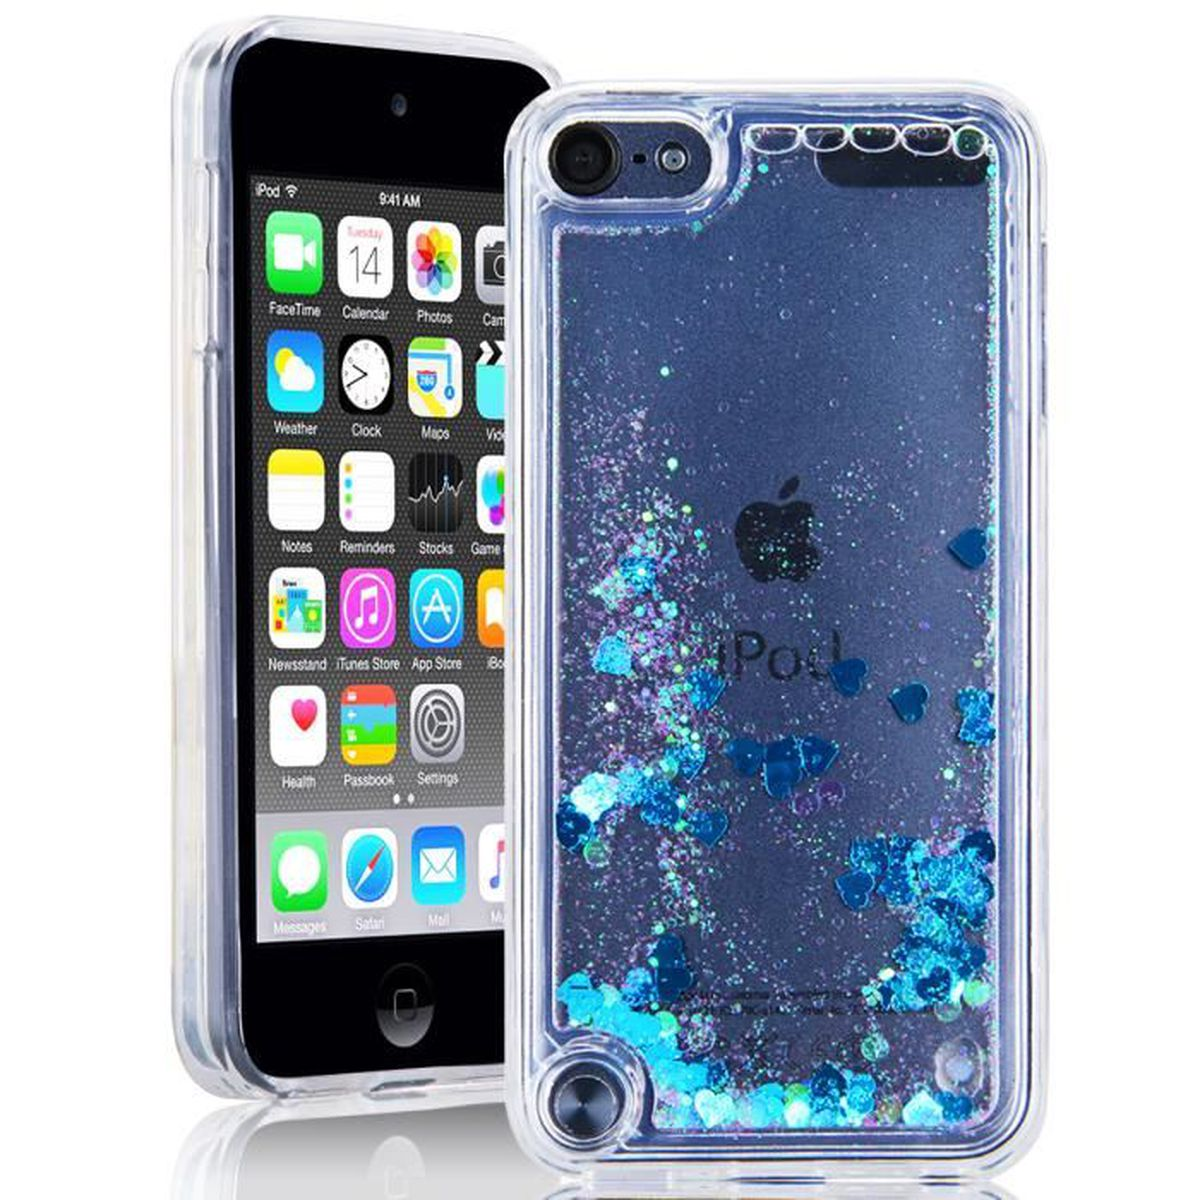 coque ipod touch 5 6 silicone bleu amour quicksands housse. Black Bedroom Furniture Sets. Home Design Ideas